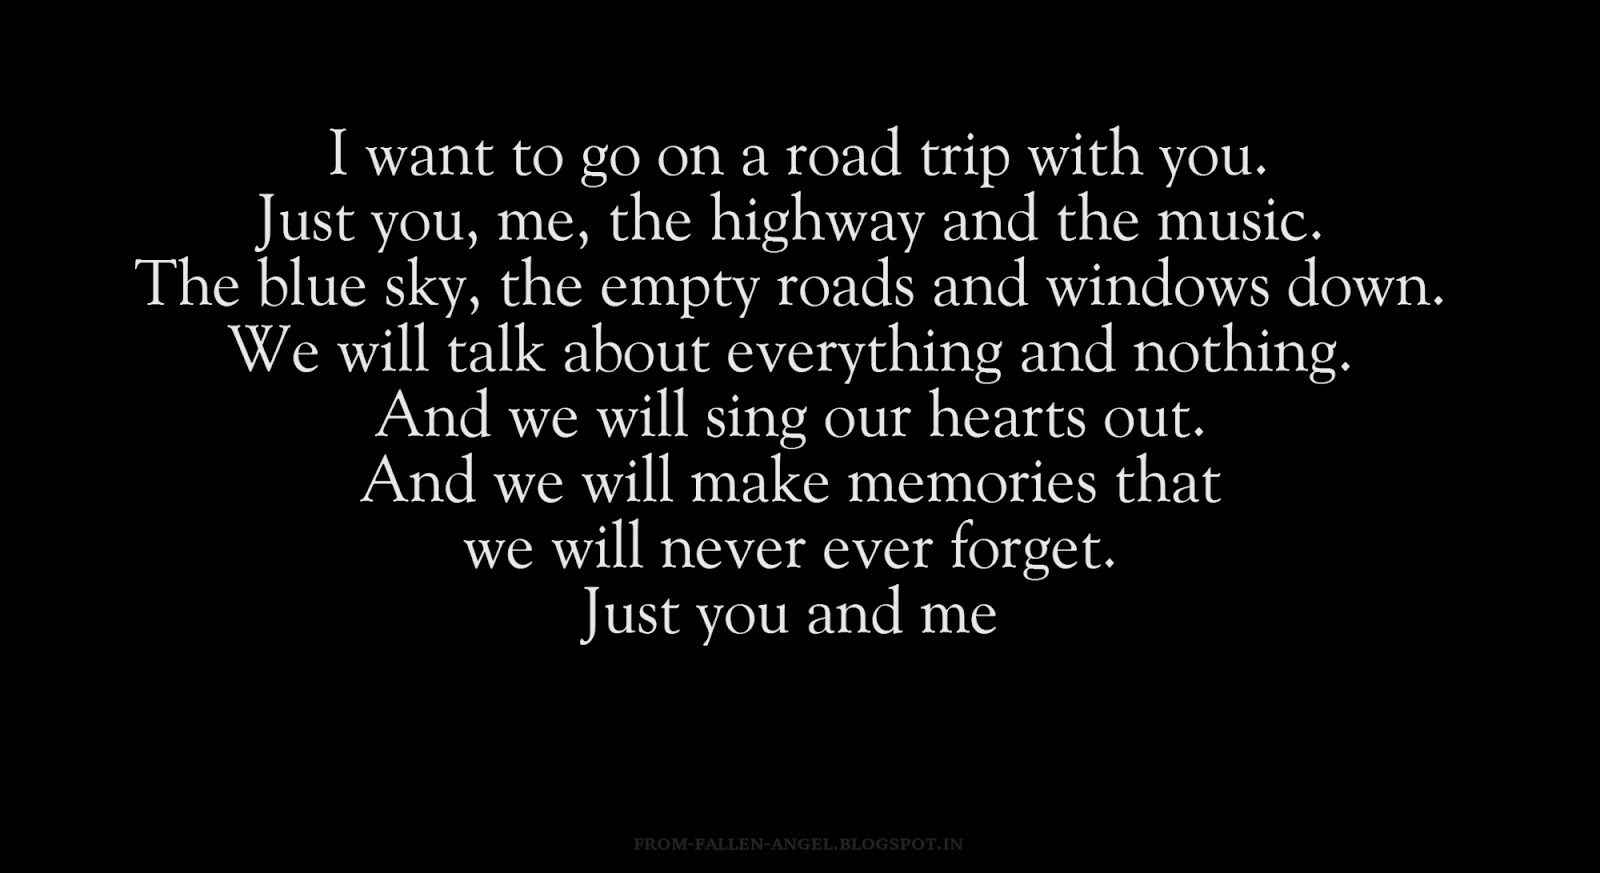 I want to go on a roadtrip with yu. Just you, me, the highway and the music. The blue sky, the empty roads and windows down. We will talk about everything and nothing. And we will sing our hearts out. And we will make memories that we will never ever forget. Just you and me